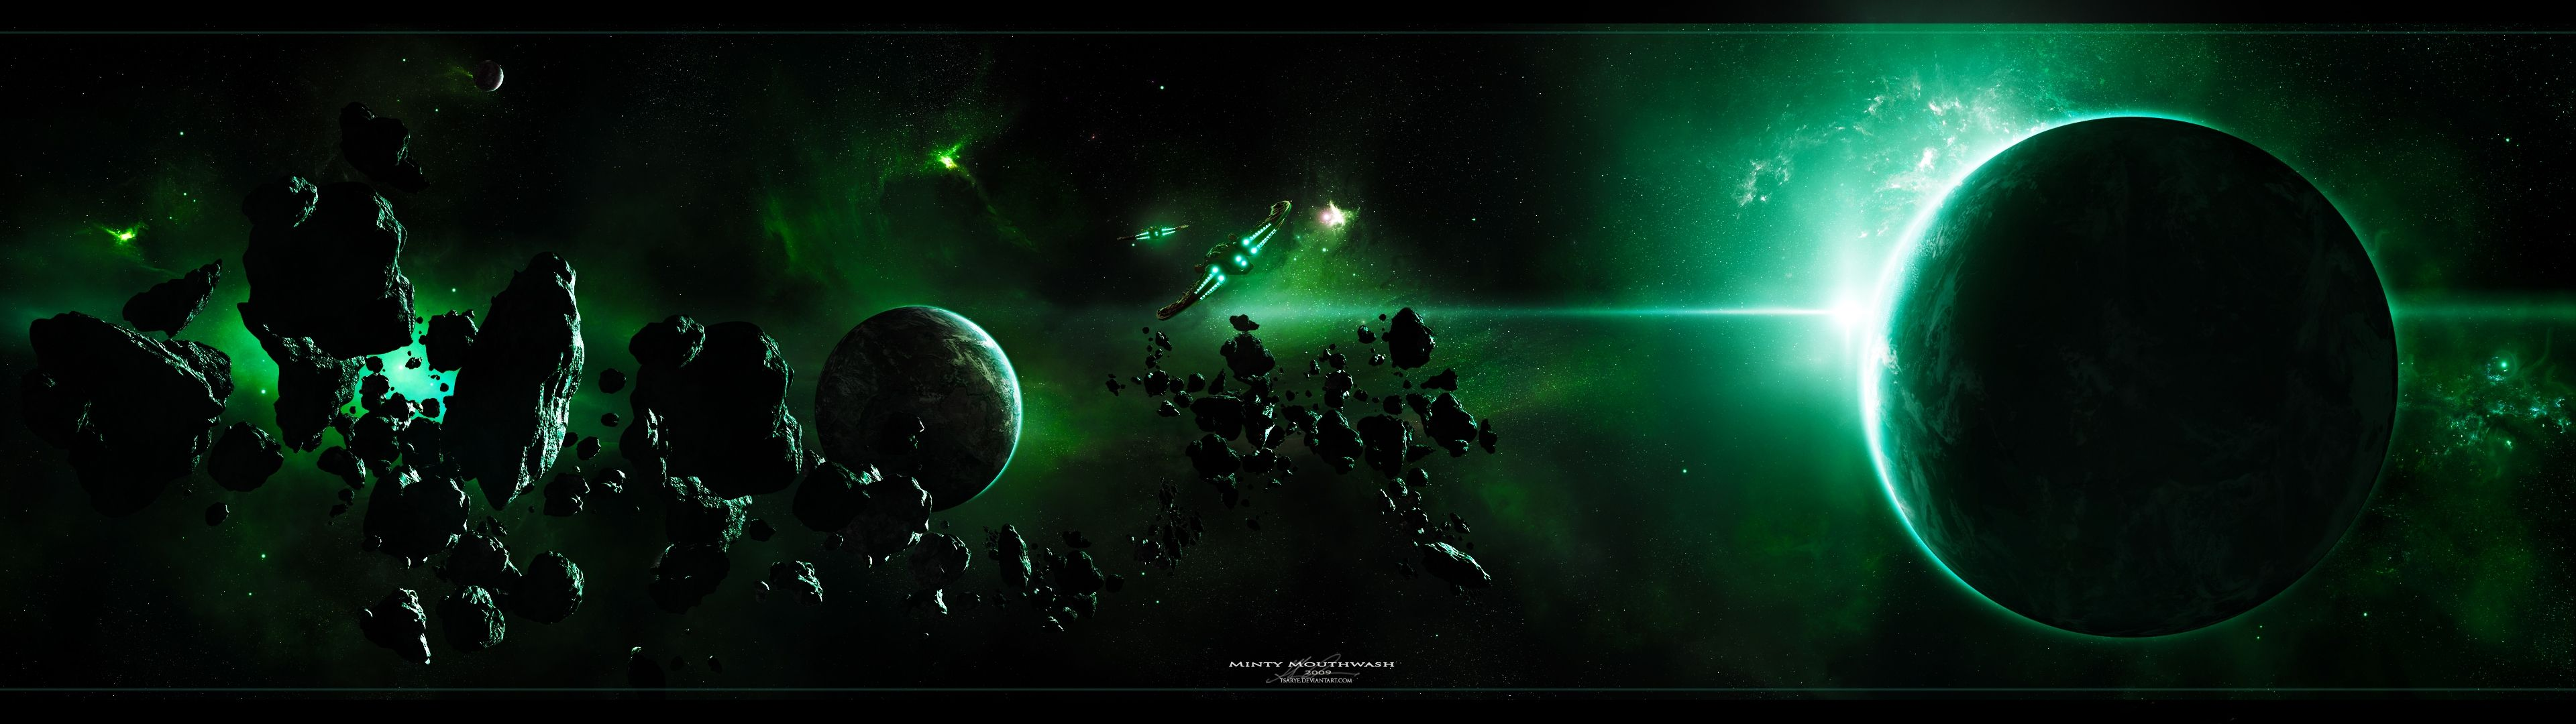 Awesome Dual Monitor Wallpapers Top Free Awesome Dual Monitor